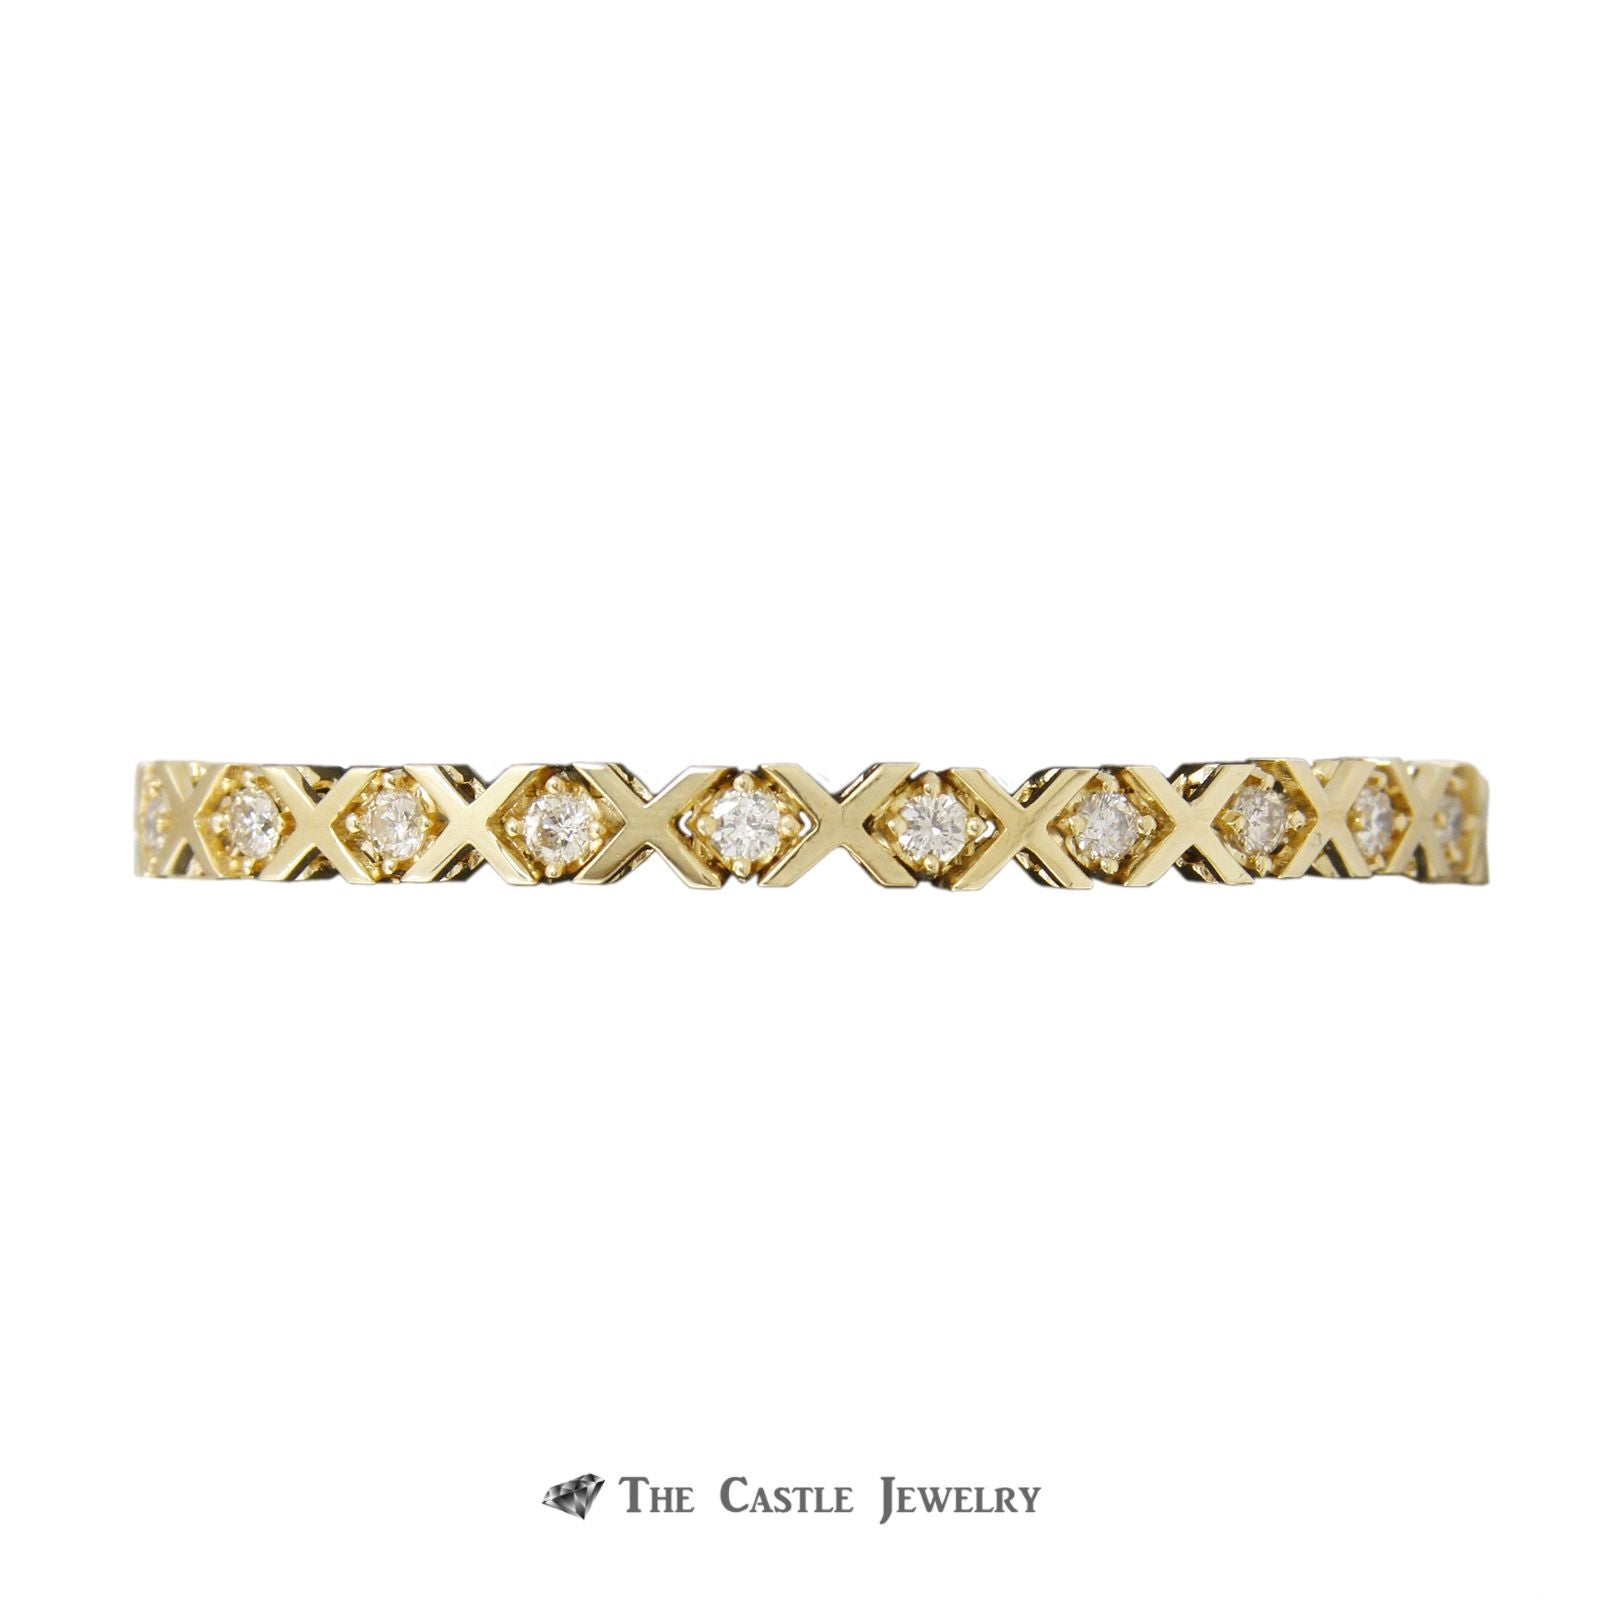 Unique X Link 2.5cttw Diamond Tennis Bracelet in 14K Yellow Gold